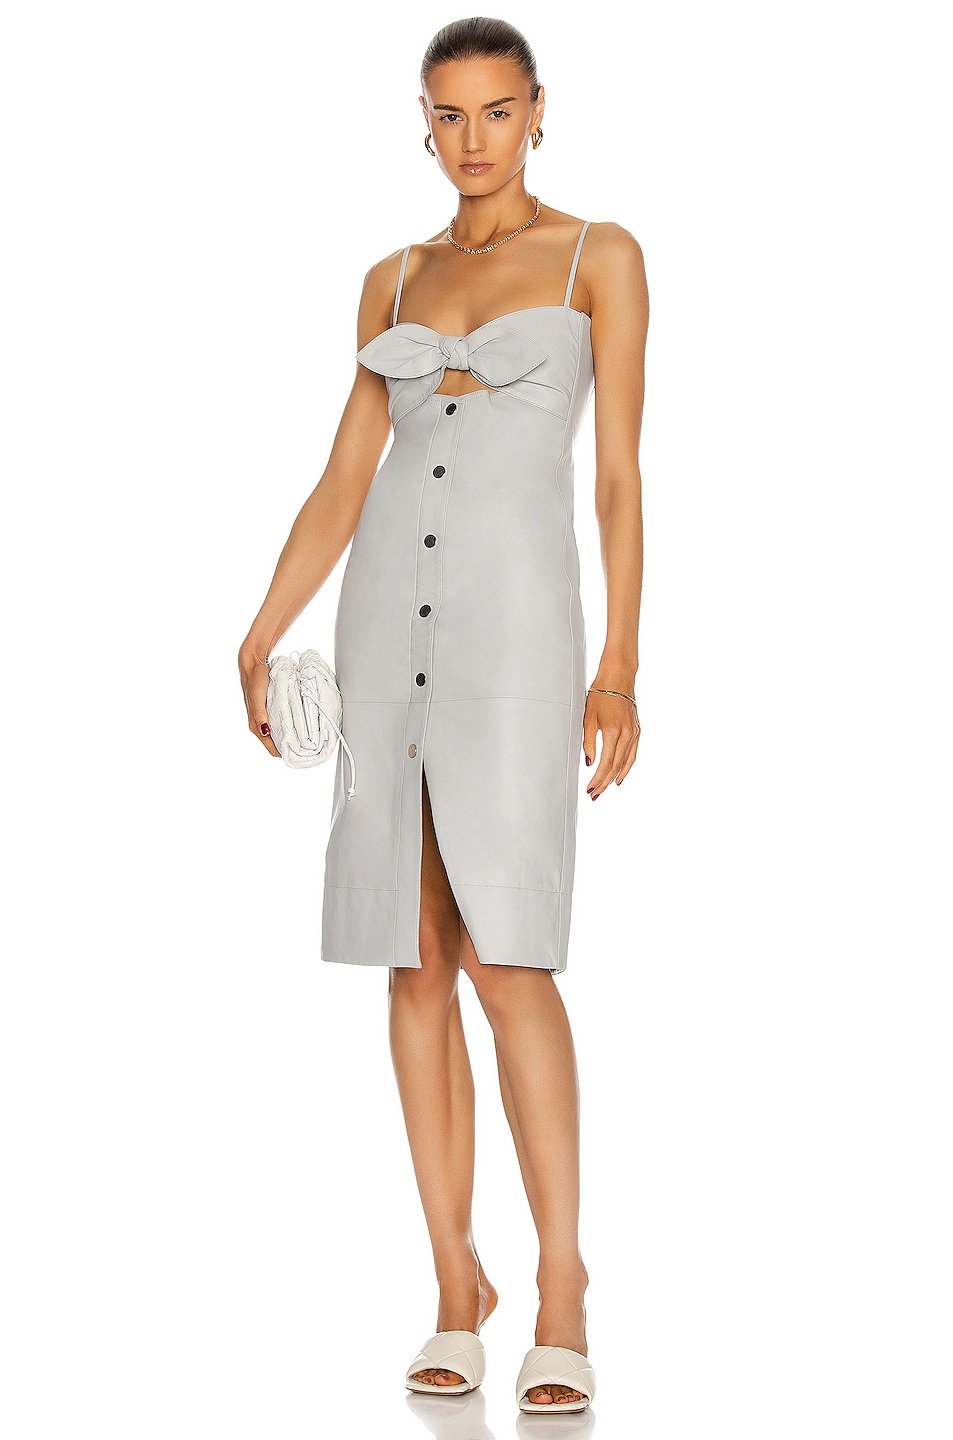 Image 1 of Proenza Schouler White Label Lightweight Leather Knotted Top Dress in Grey